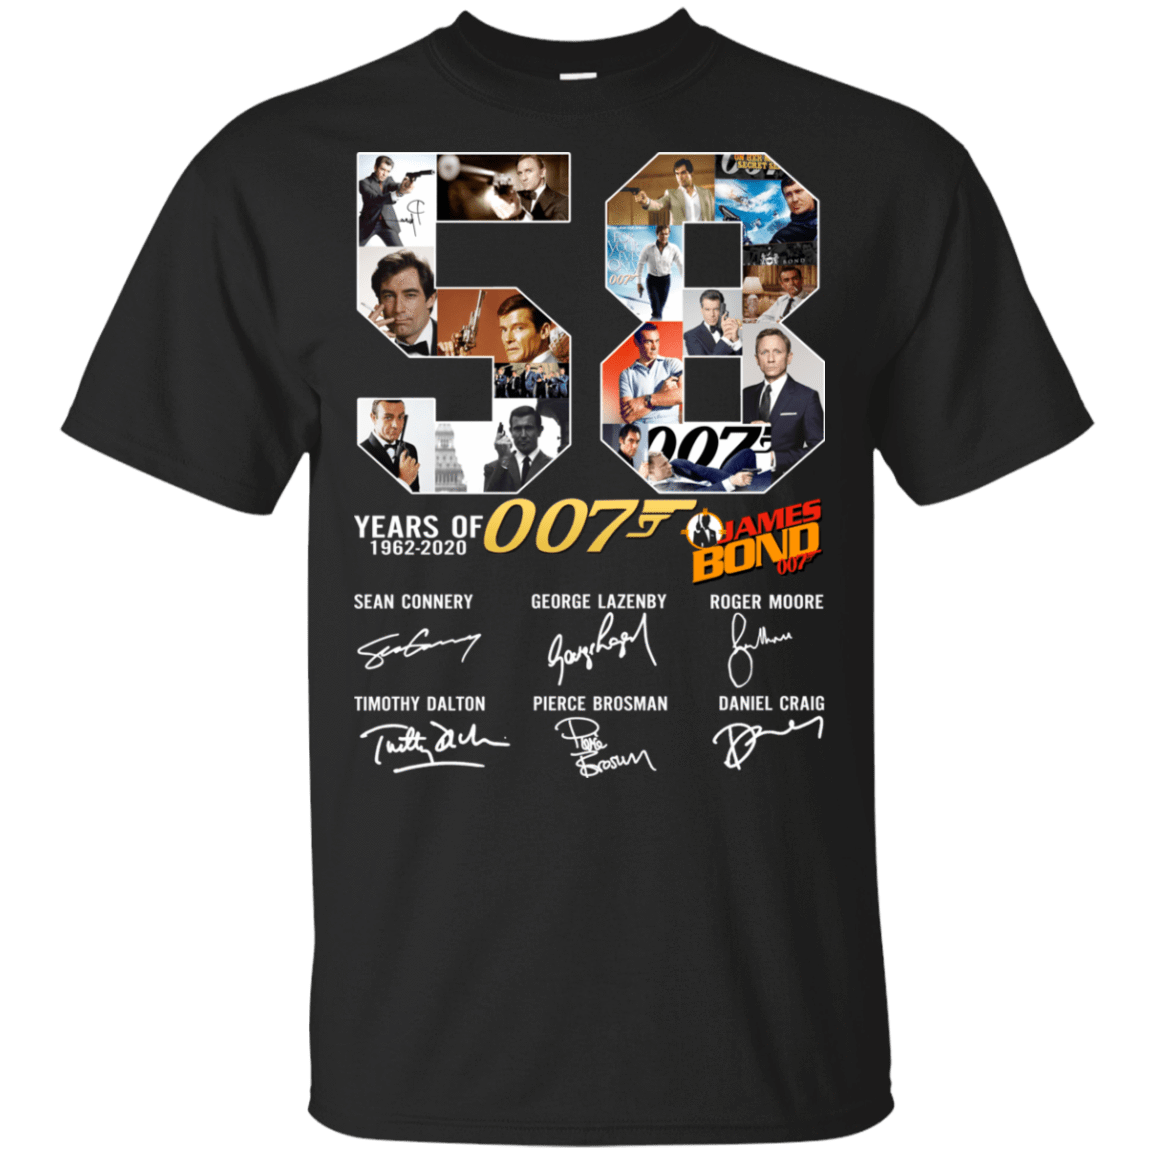 58 Years Of James Bond Anniversary T-Shirts, Hoodie, Tank 22-113-78230018-252 - Tee Ript